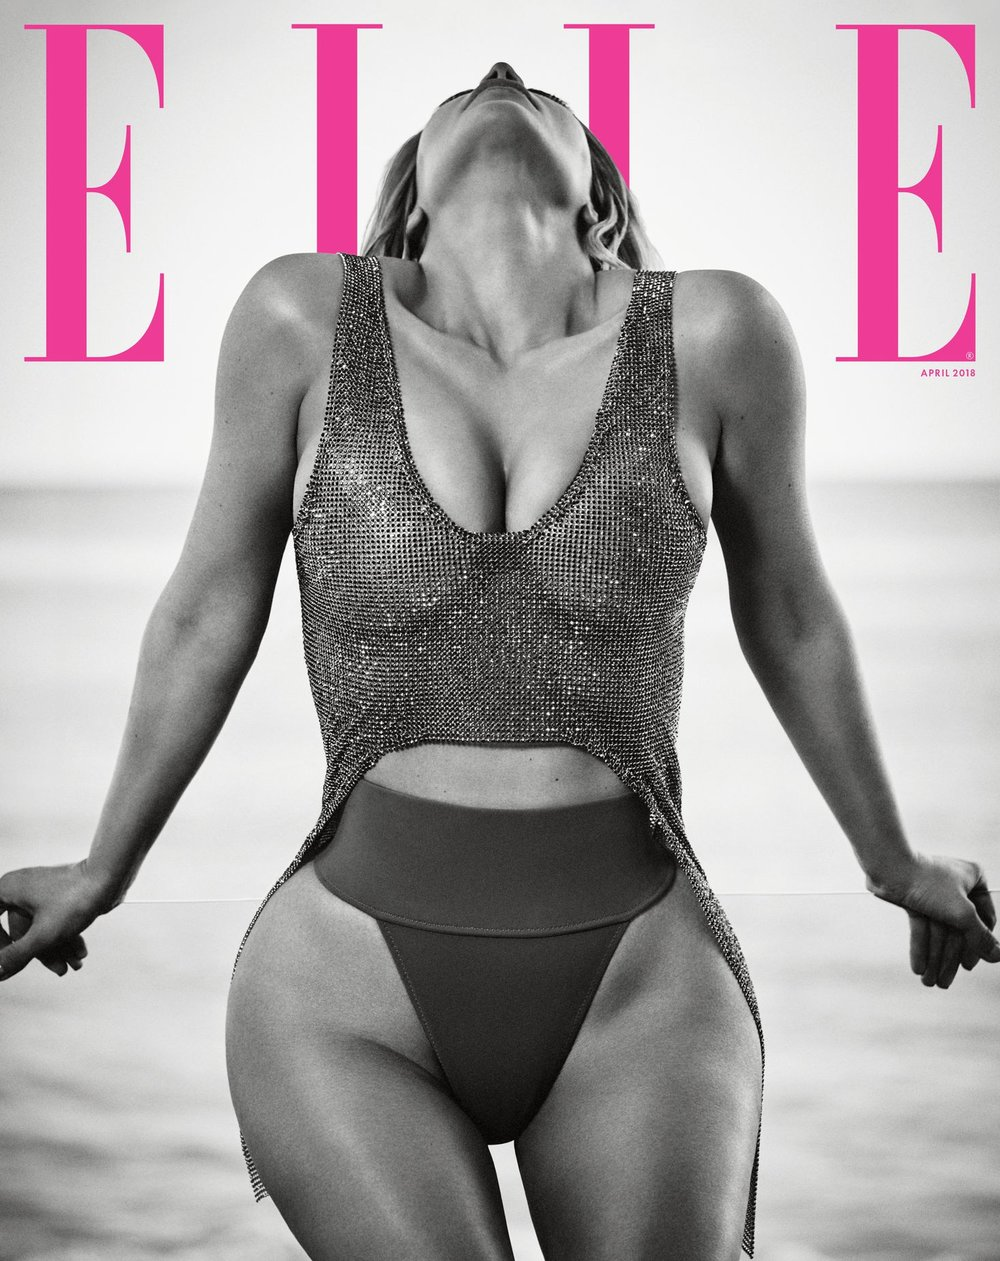 Kim Khardashian Cover Story Elle US April 2018  (1).jpg